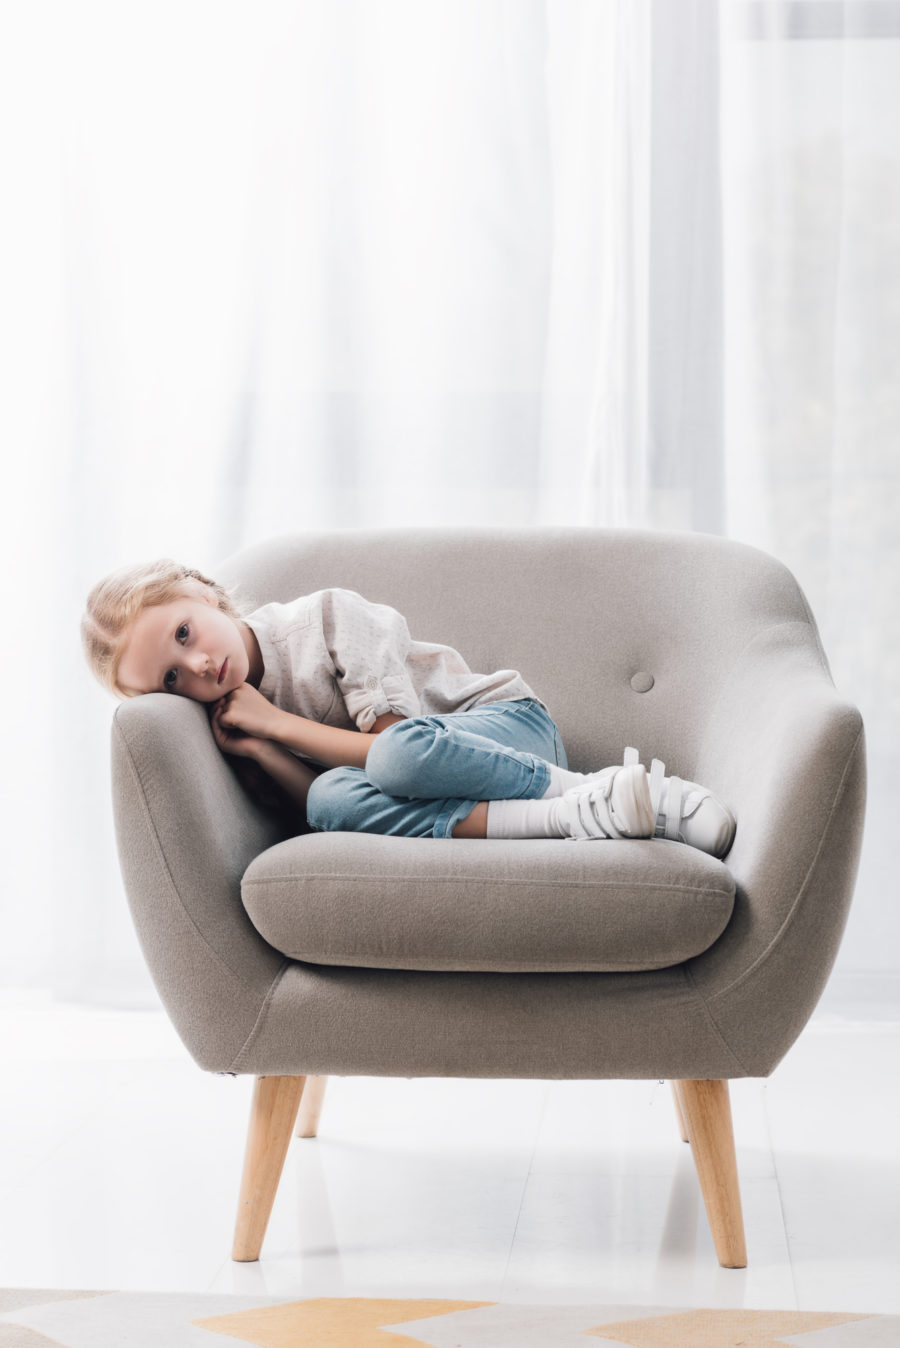 young girls laying in a small chair, sad. Father's Rights and paternity